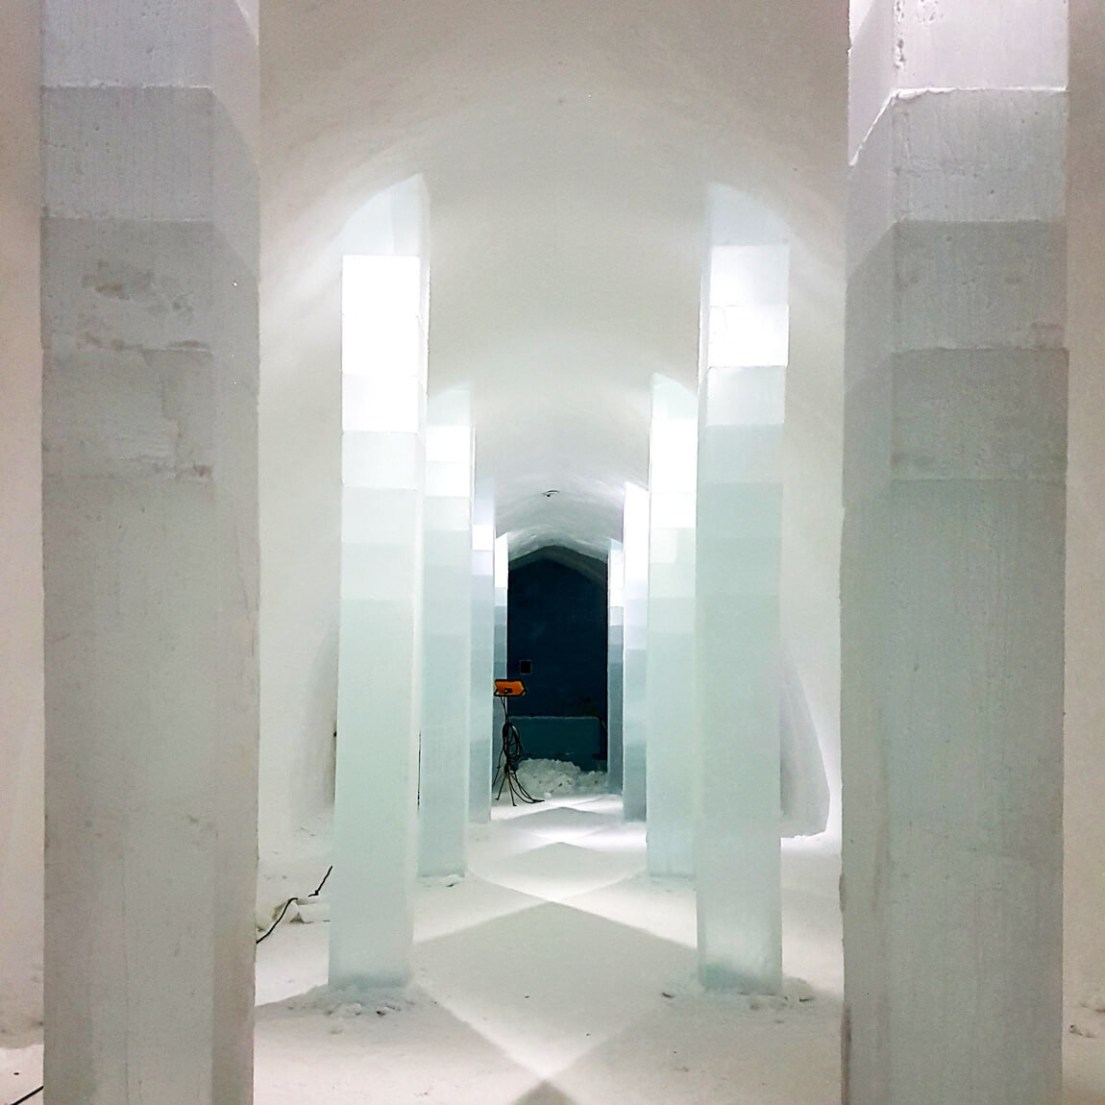 The central hall entrance to the ICEHOTEL Sweden 2018. Here, 20 artists work on different rooms. Having won the design competition individually, they now work as a team to complete the hotel in time for guests arriving.